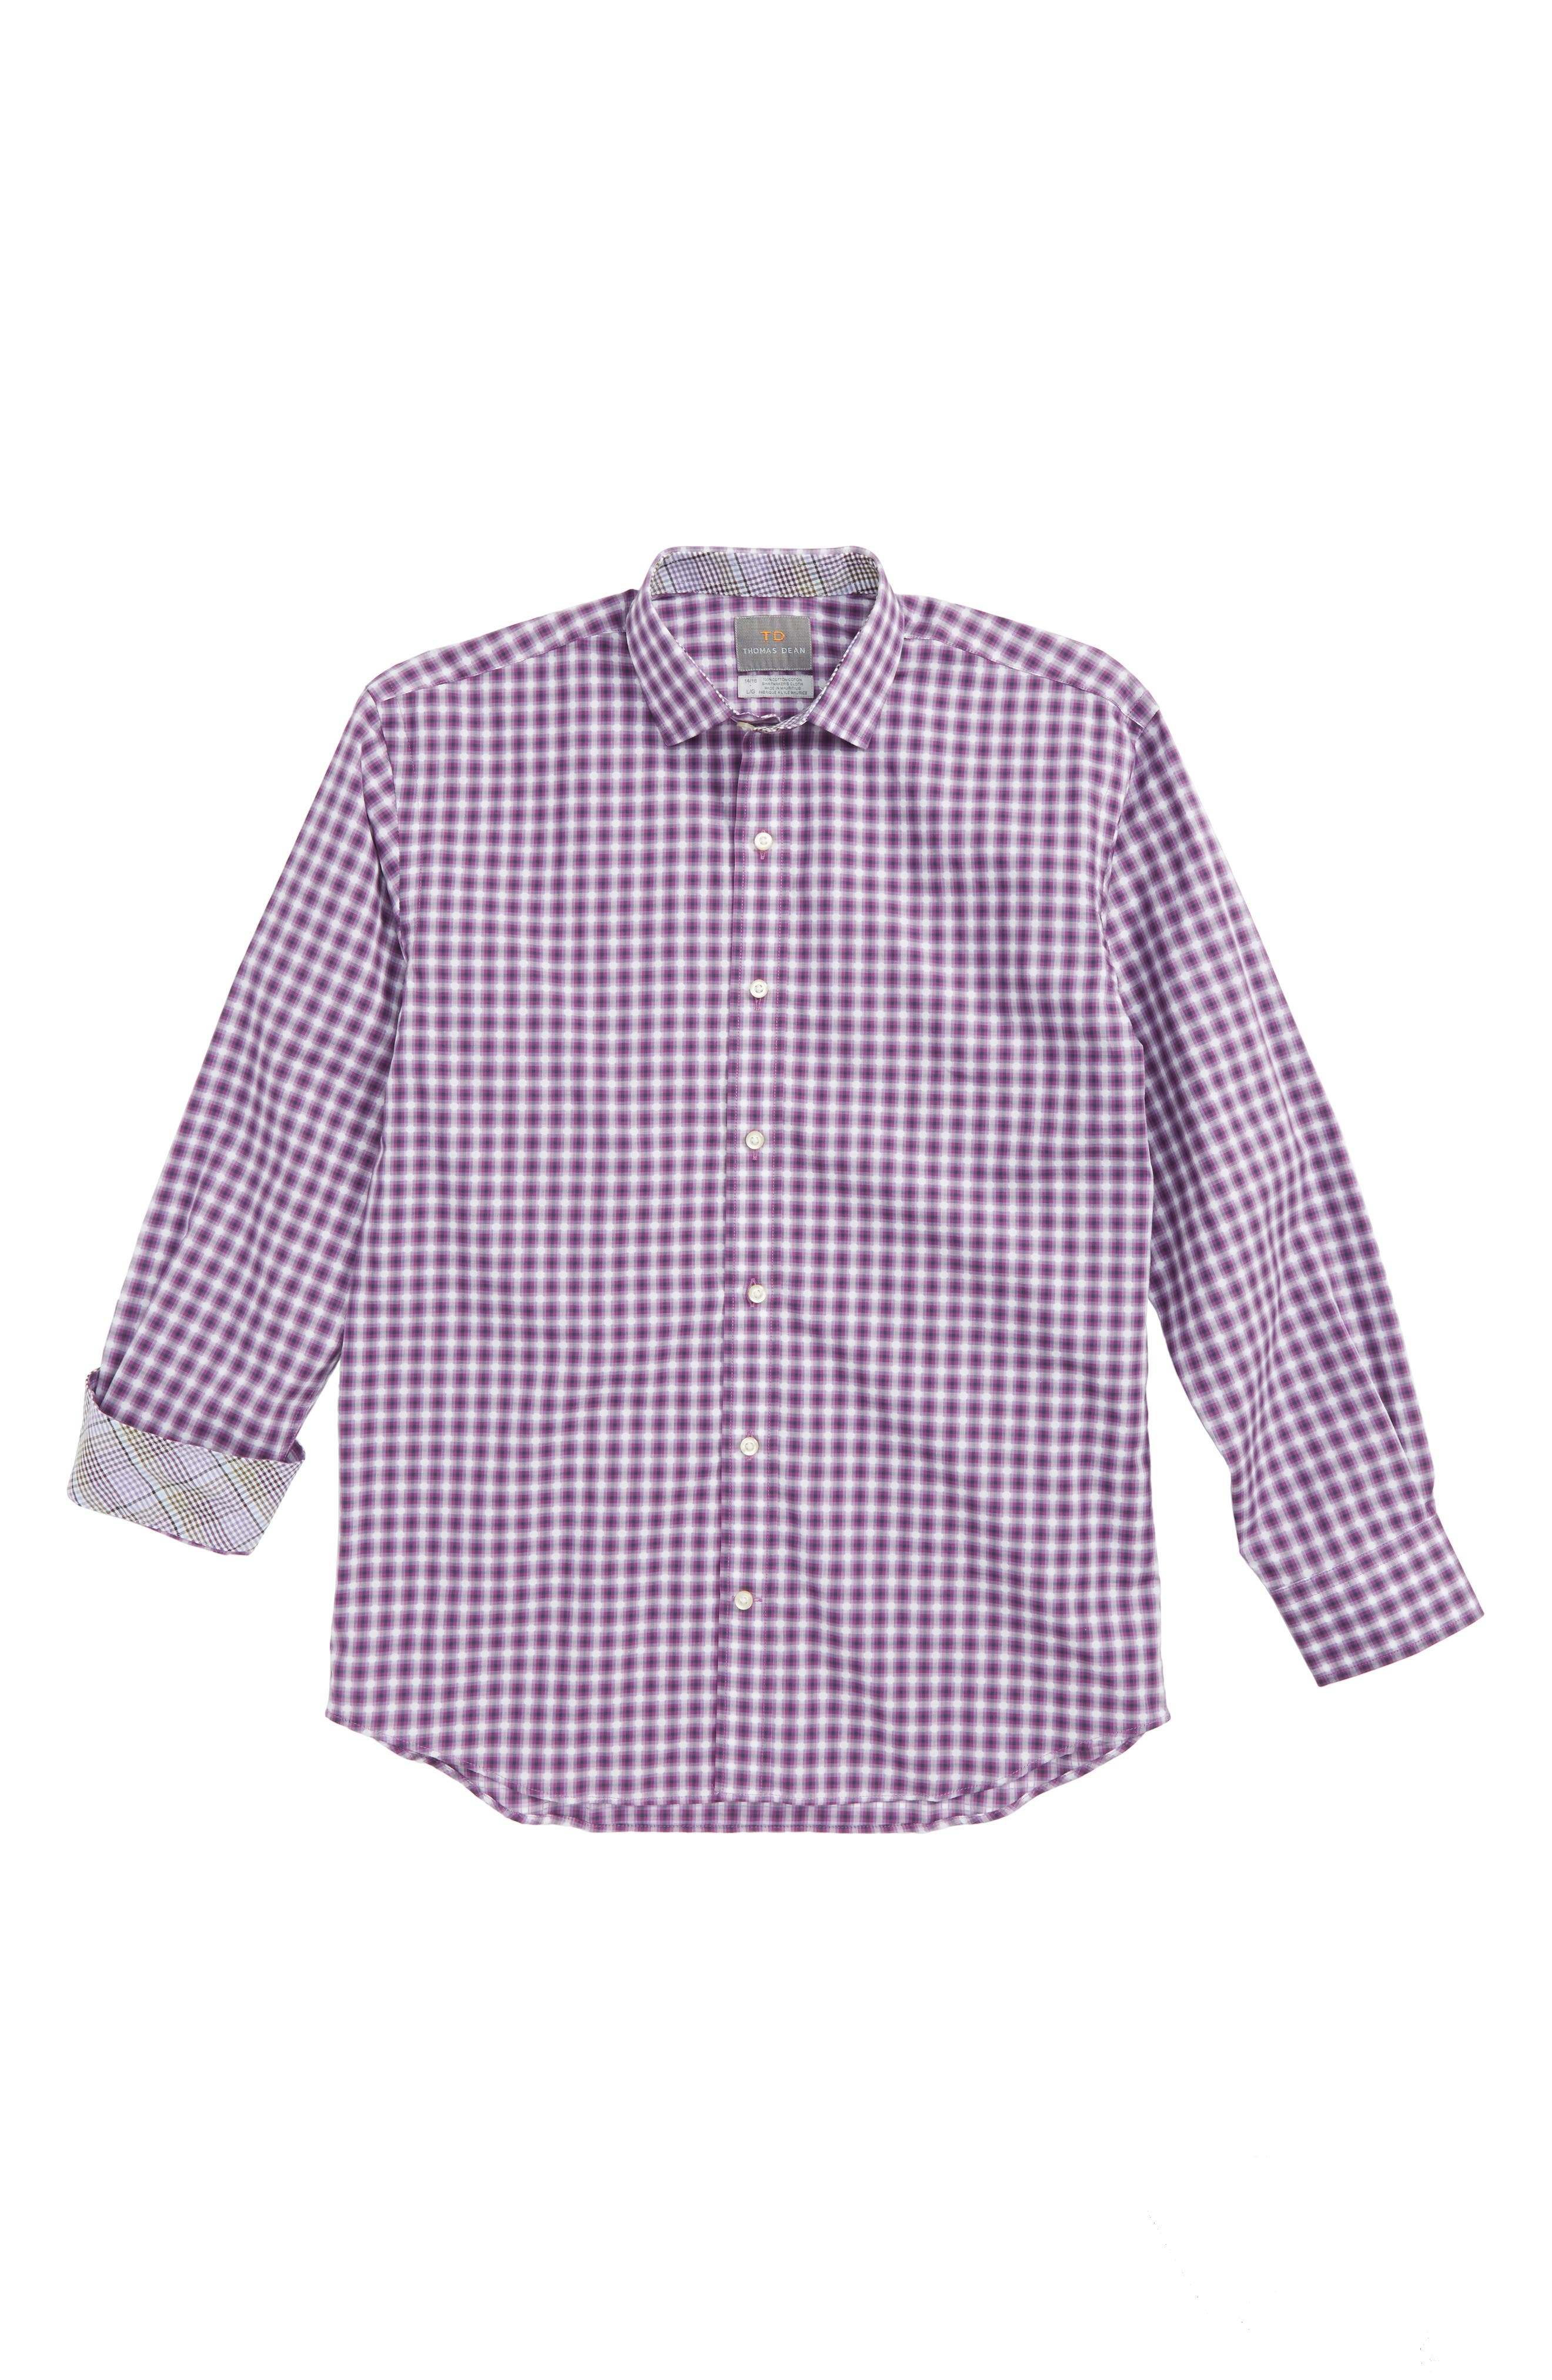 Geo Check Dress Shirt,                         Main,                         color, Purple